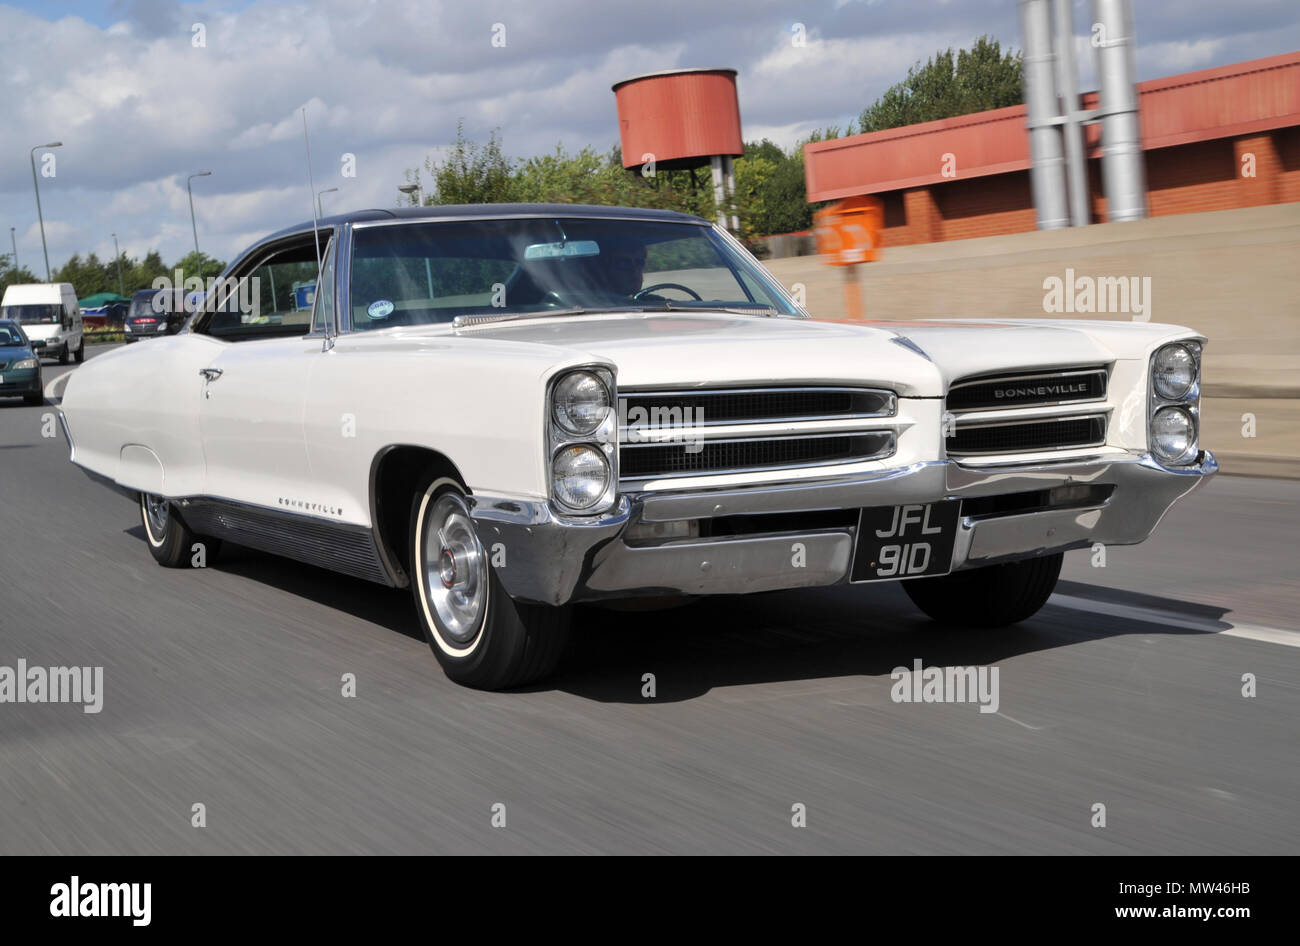 hight resolution of 1966 pontiac bonneville coupe classic american car a huge 2 door coupe stock image